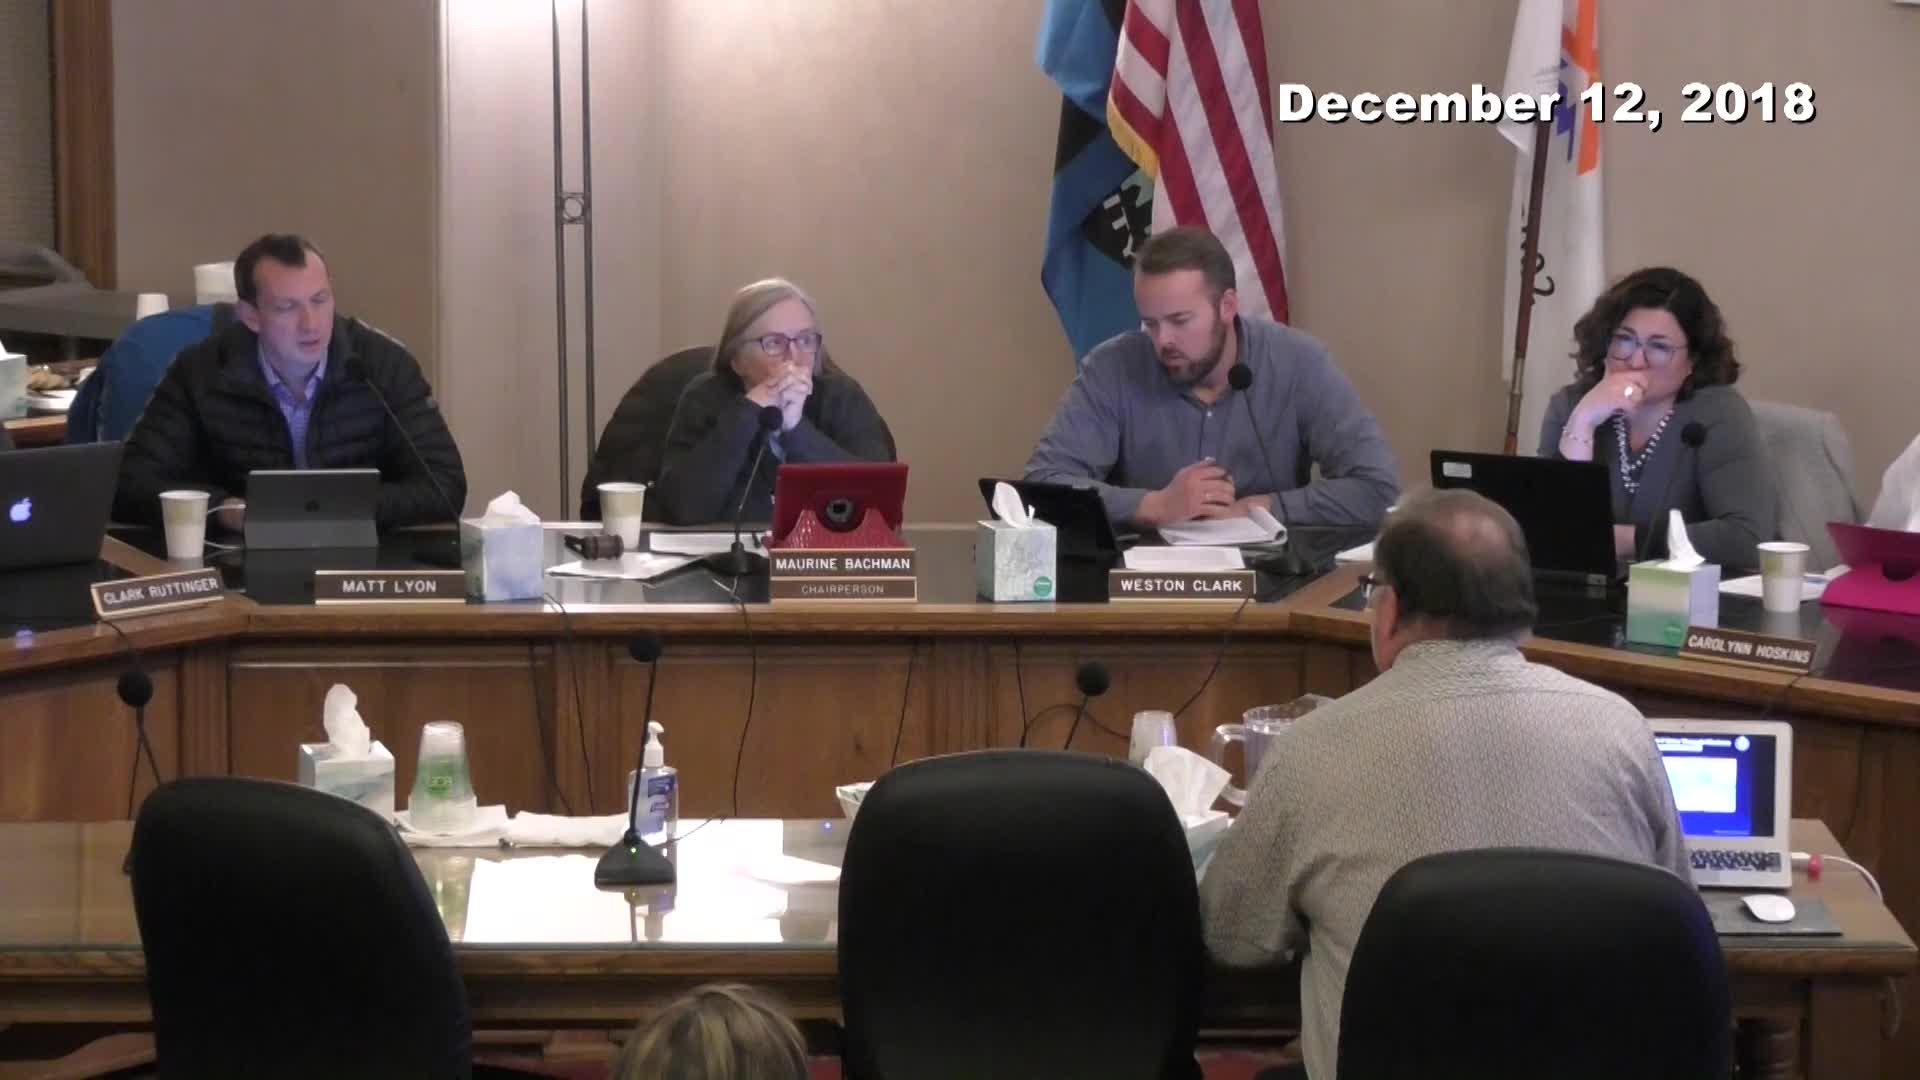 Planning Commission Meeting - 12/12/2018